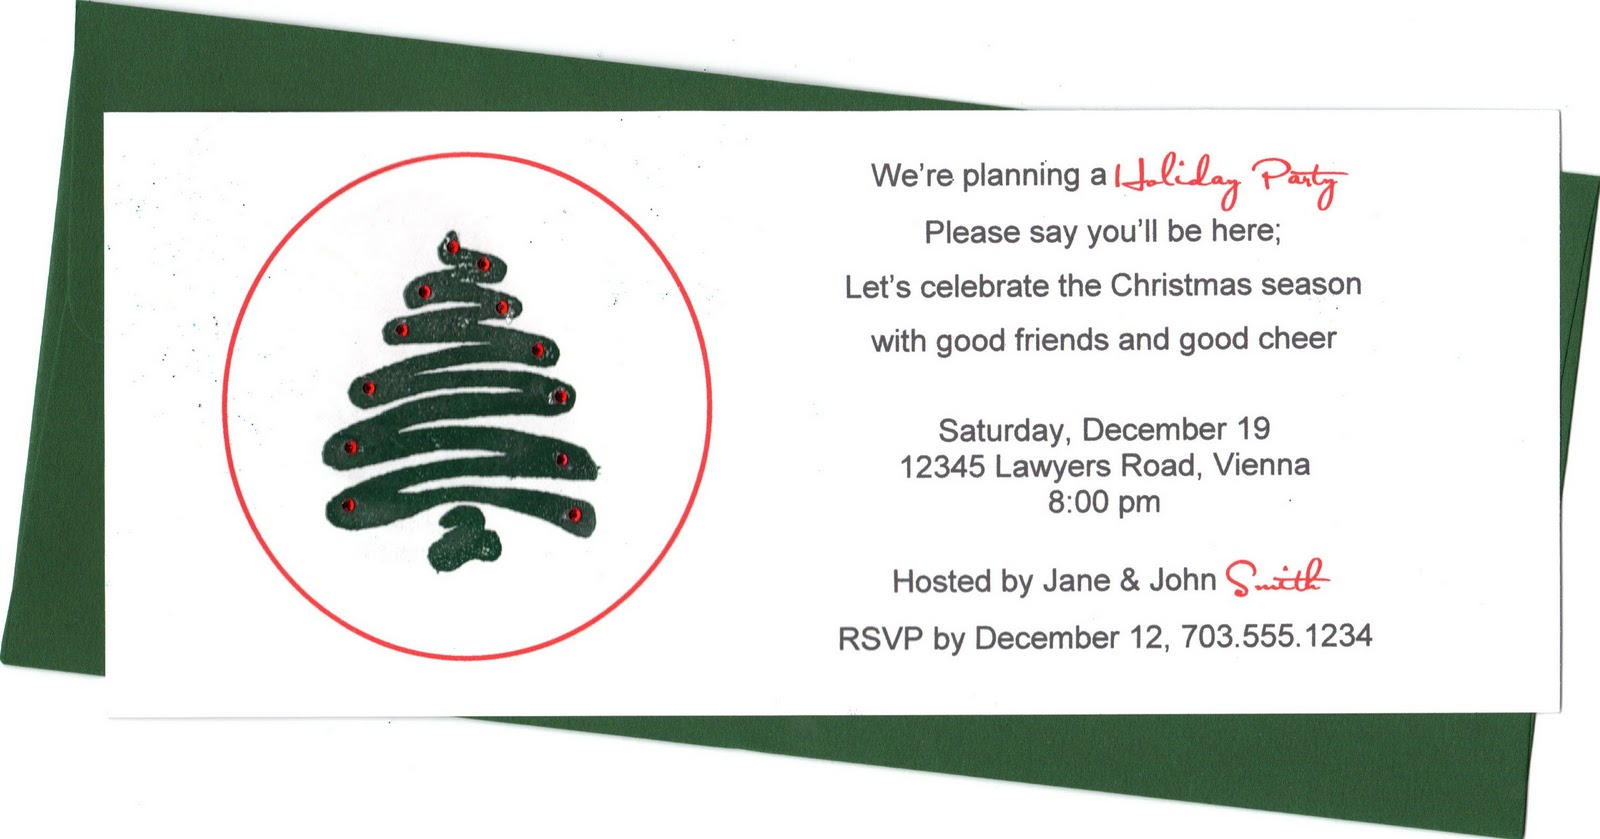 Posh in a pinch holiday party 7 invitation wording ideasparty holiday party 7 invitation wording ideas stopboris